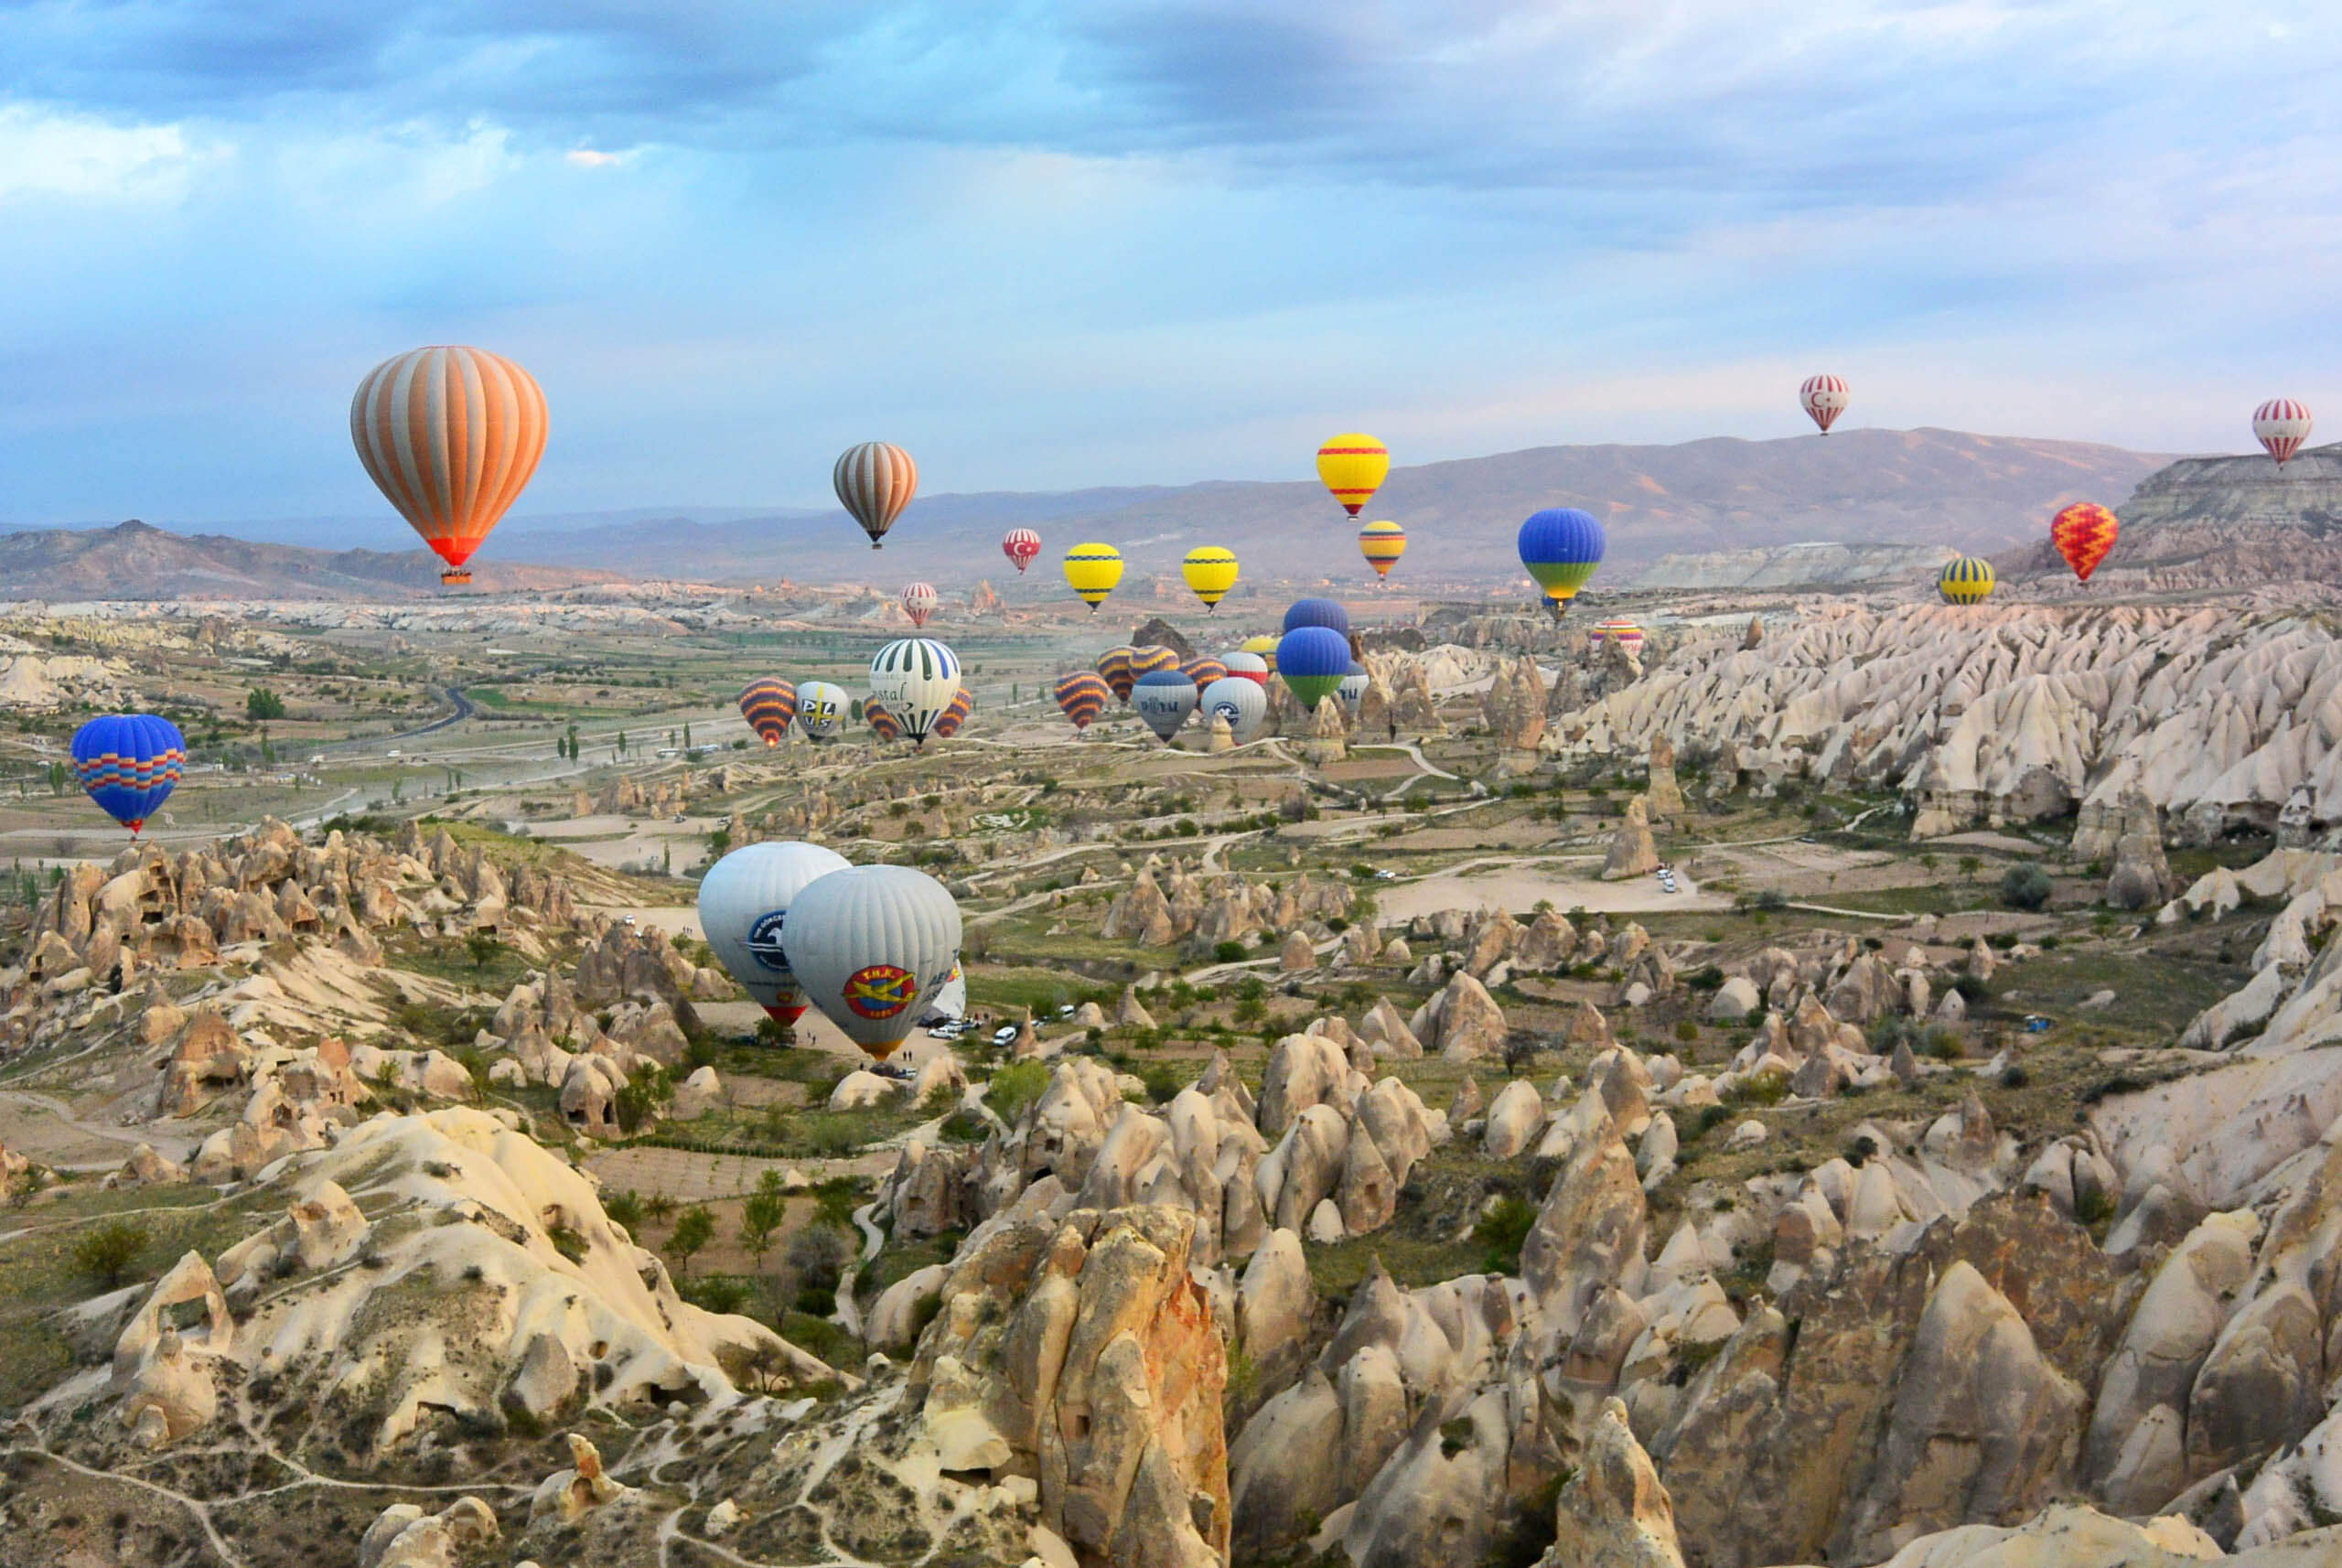 Hot air balloons over the Cappadocia region in Turkey. Photo by Mar Cerdeira on Unsplash